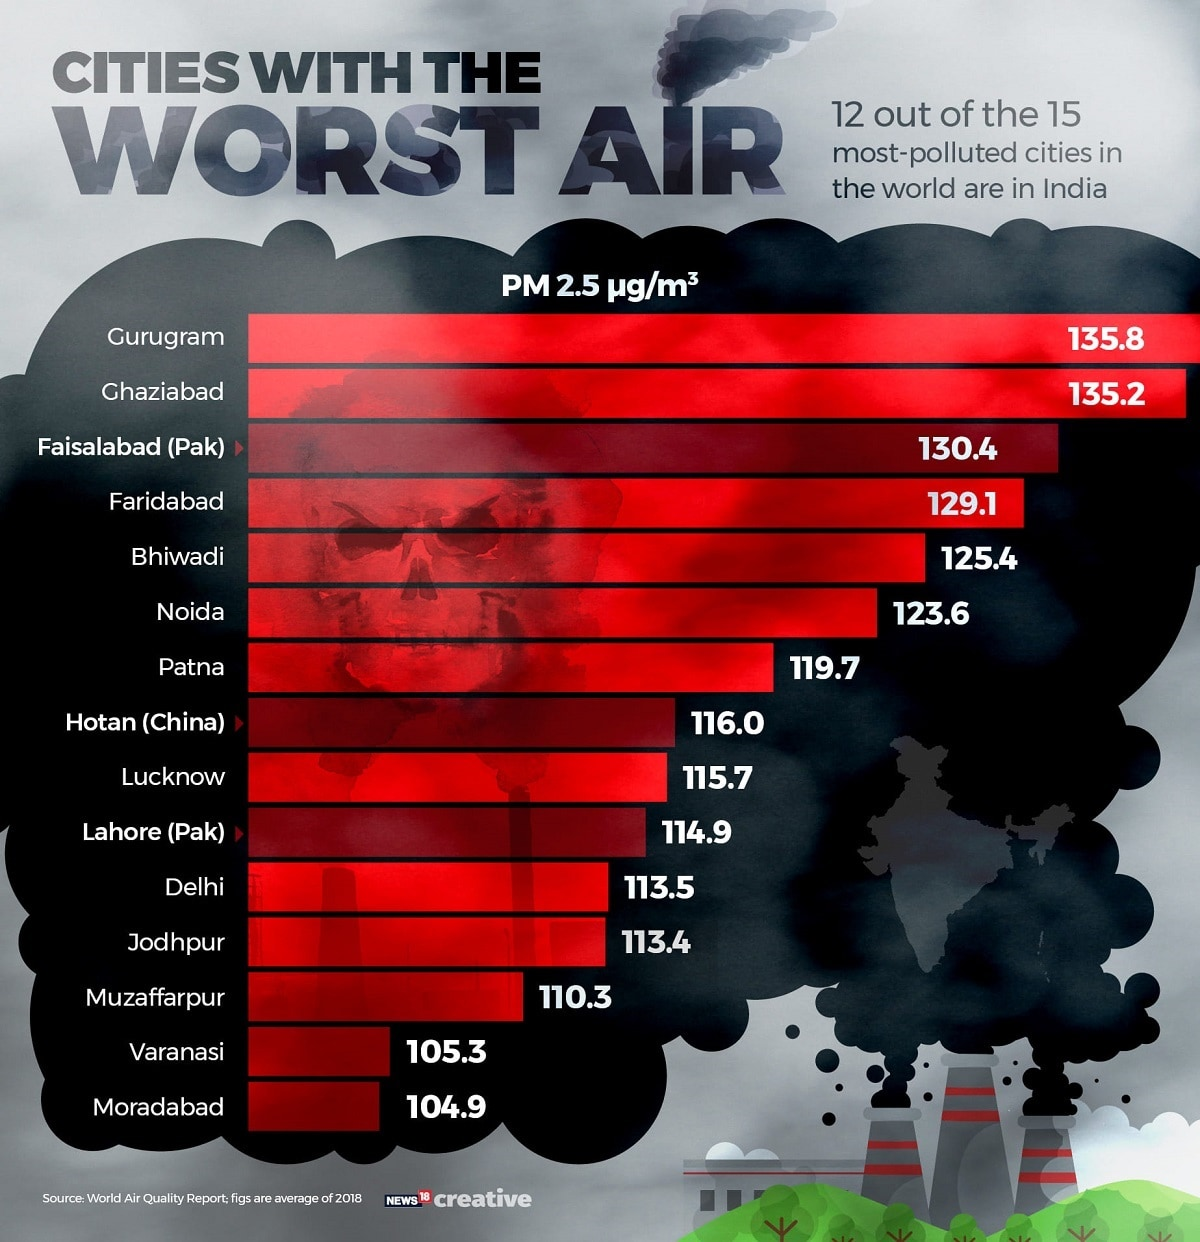 12 of the top 15 most polluted cities in the world are located in India, according to an analysis of air quality in several cities around the world.